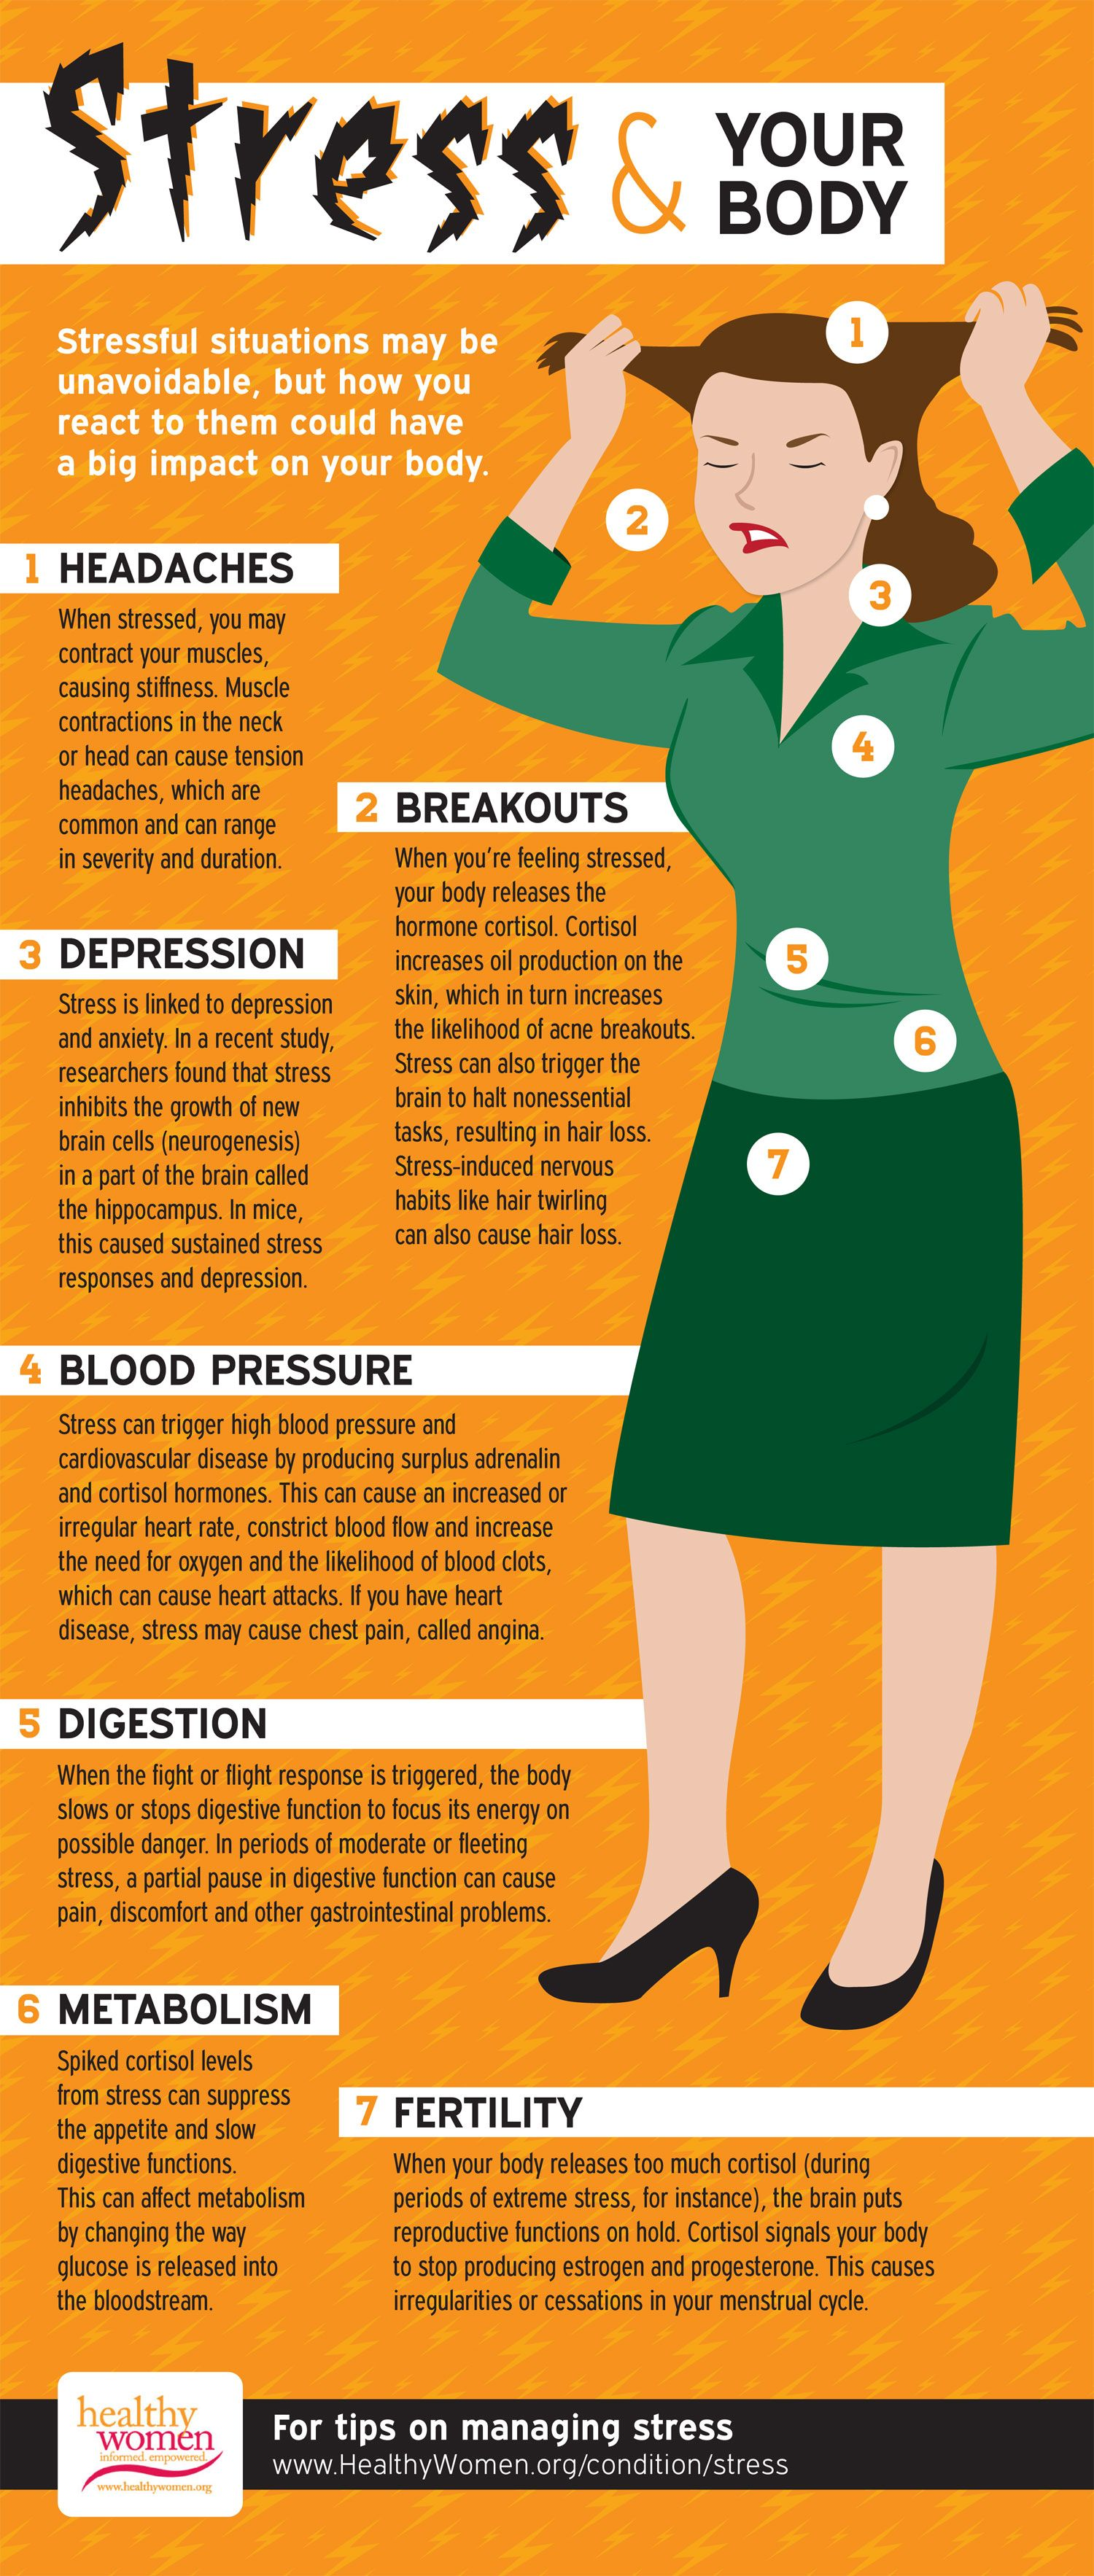 Stress not only affects your thoughts, moods and behavior